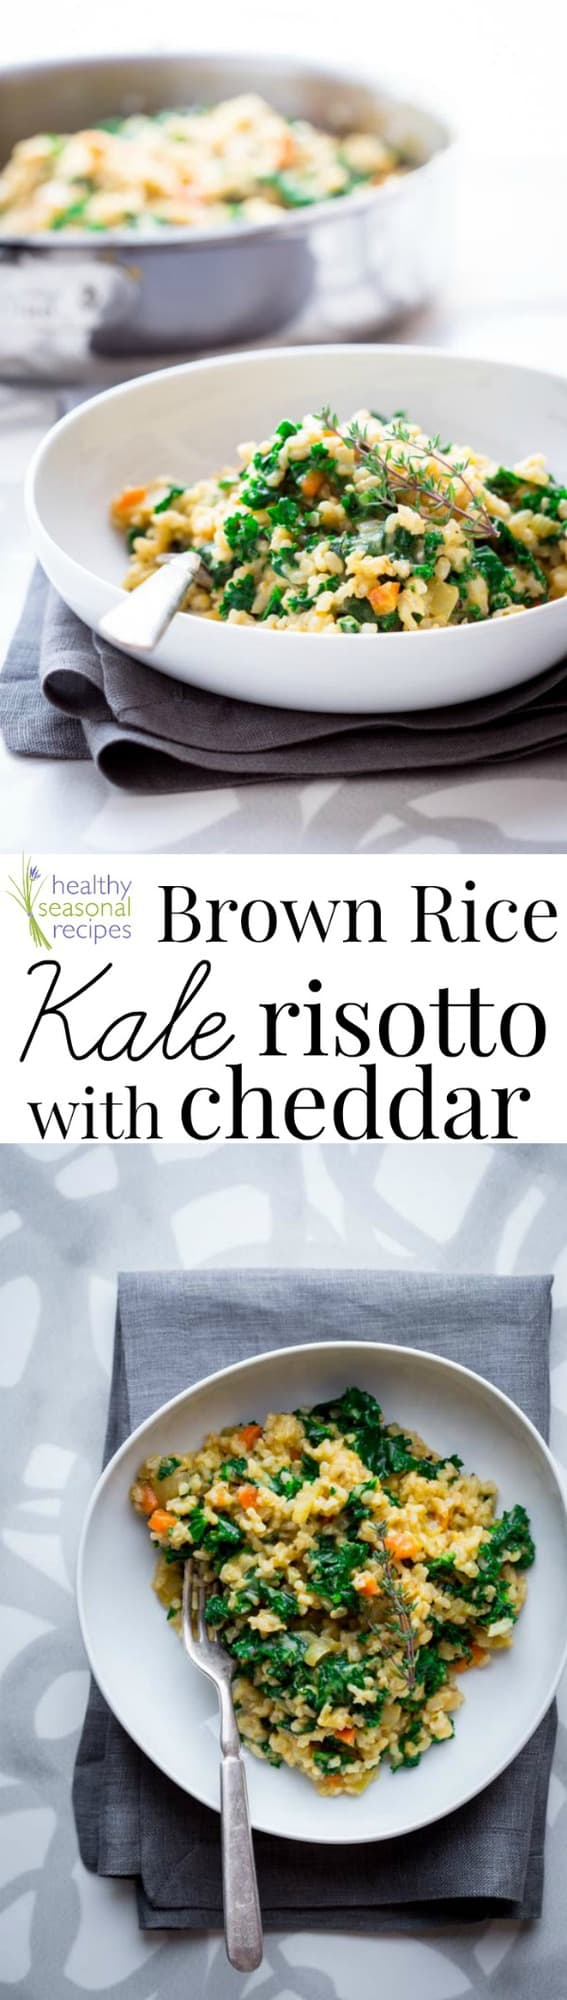 Brown Rice Risotto Food Network